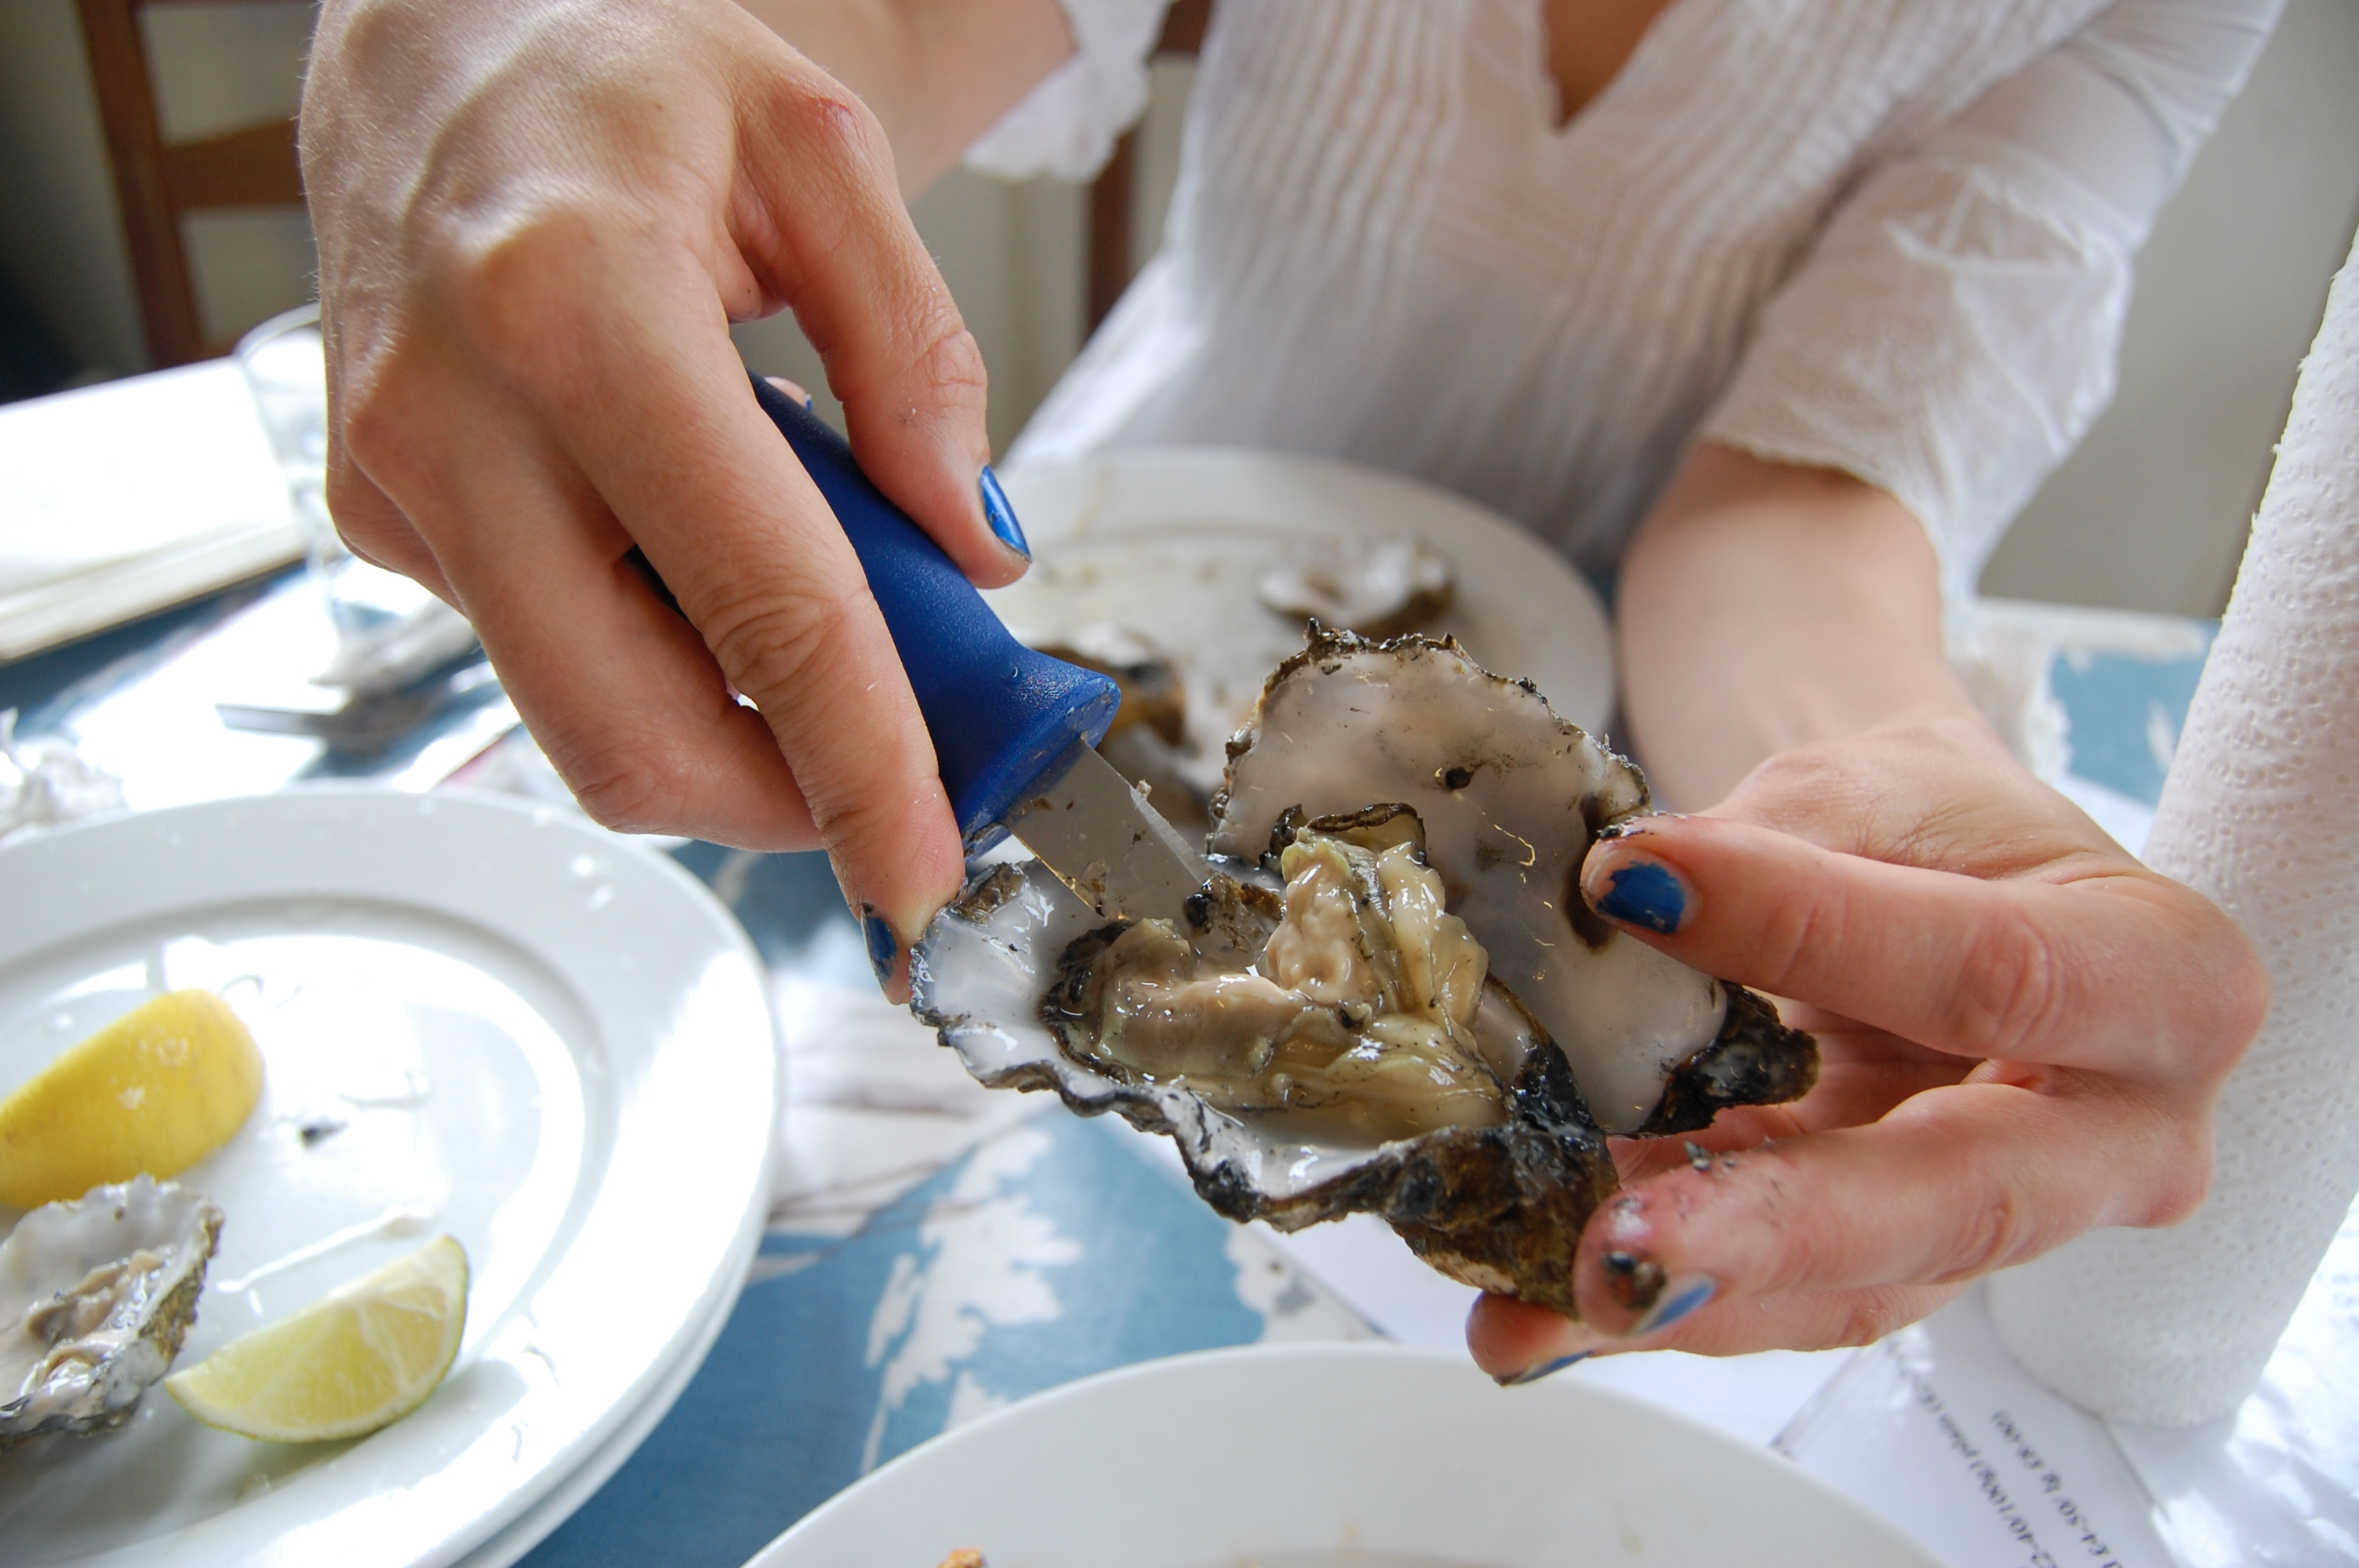 eating oysters - photo #39